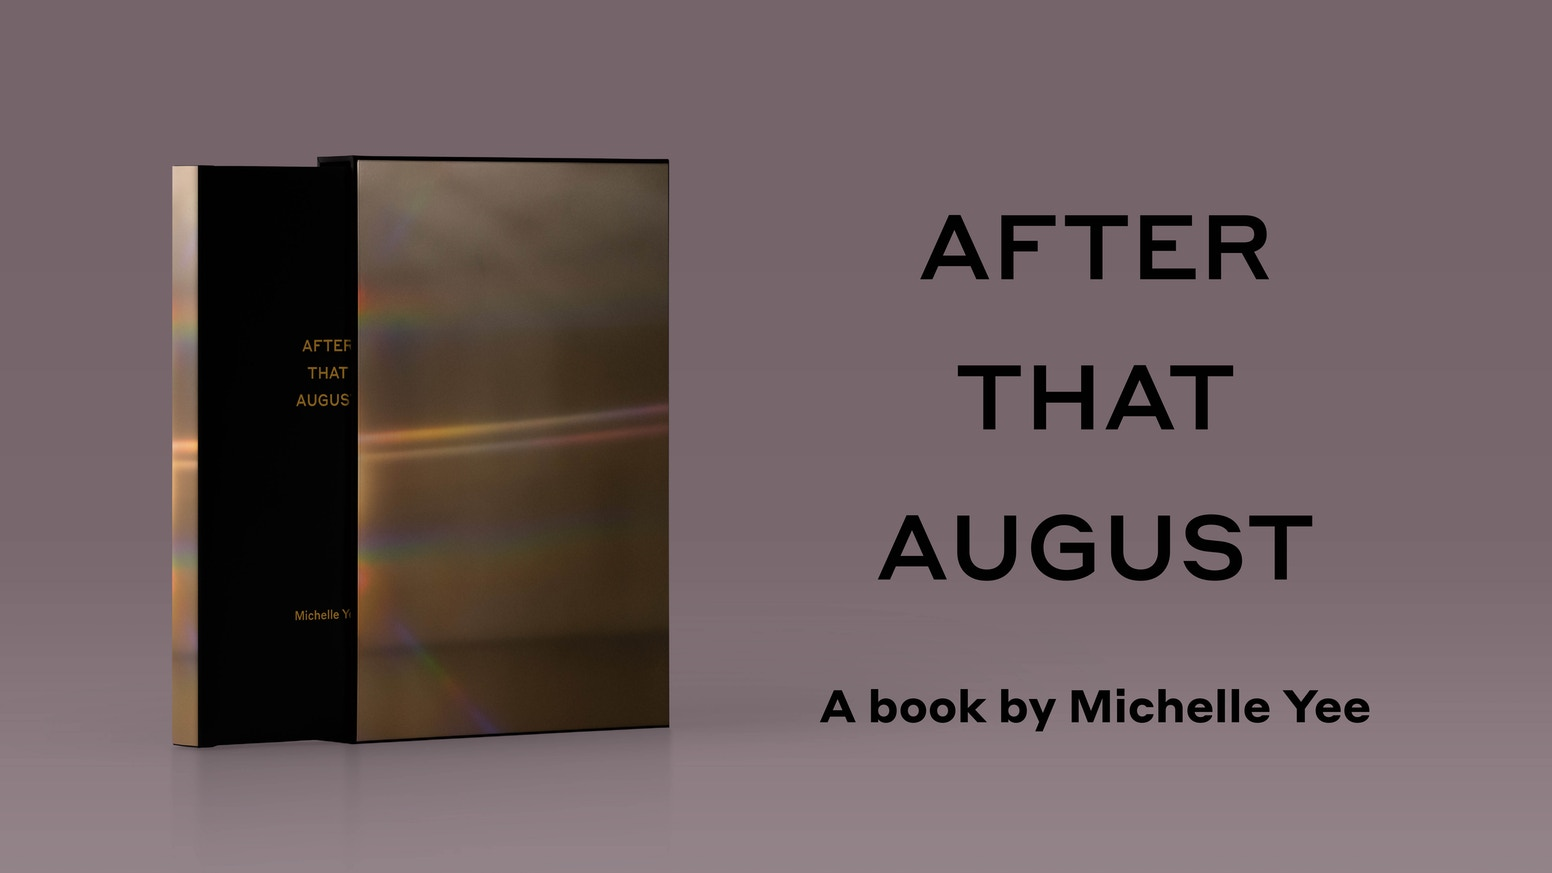 The story of one woman's journey to love after a divorce presented in a 150-page hand-finished artist's book.